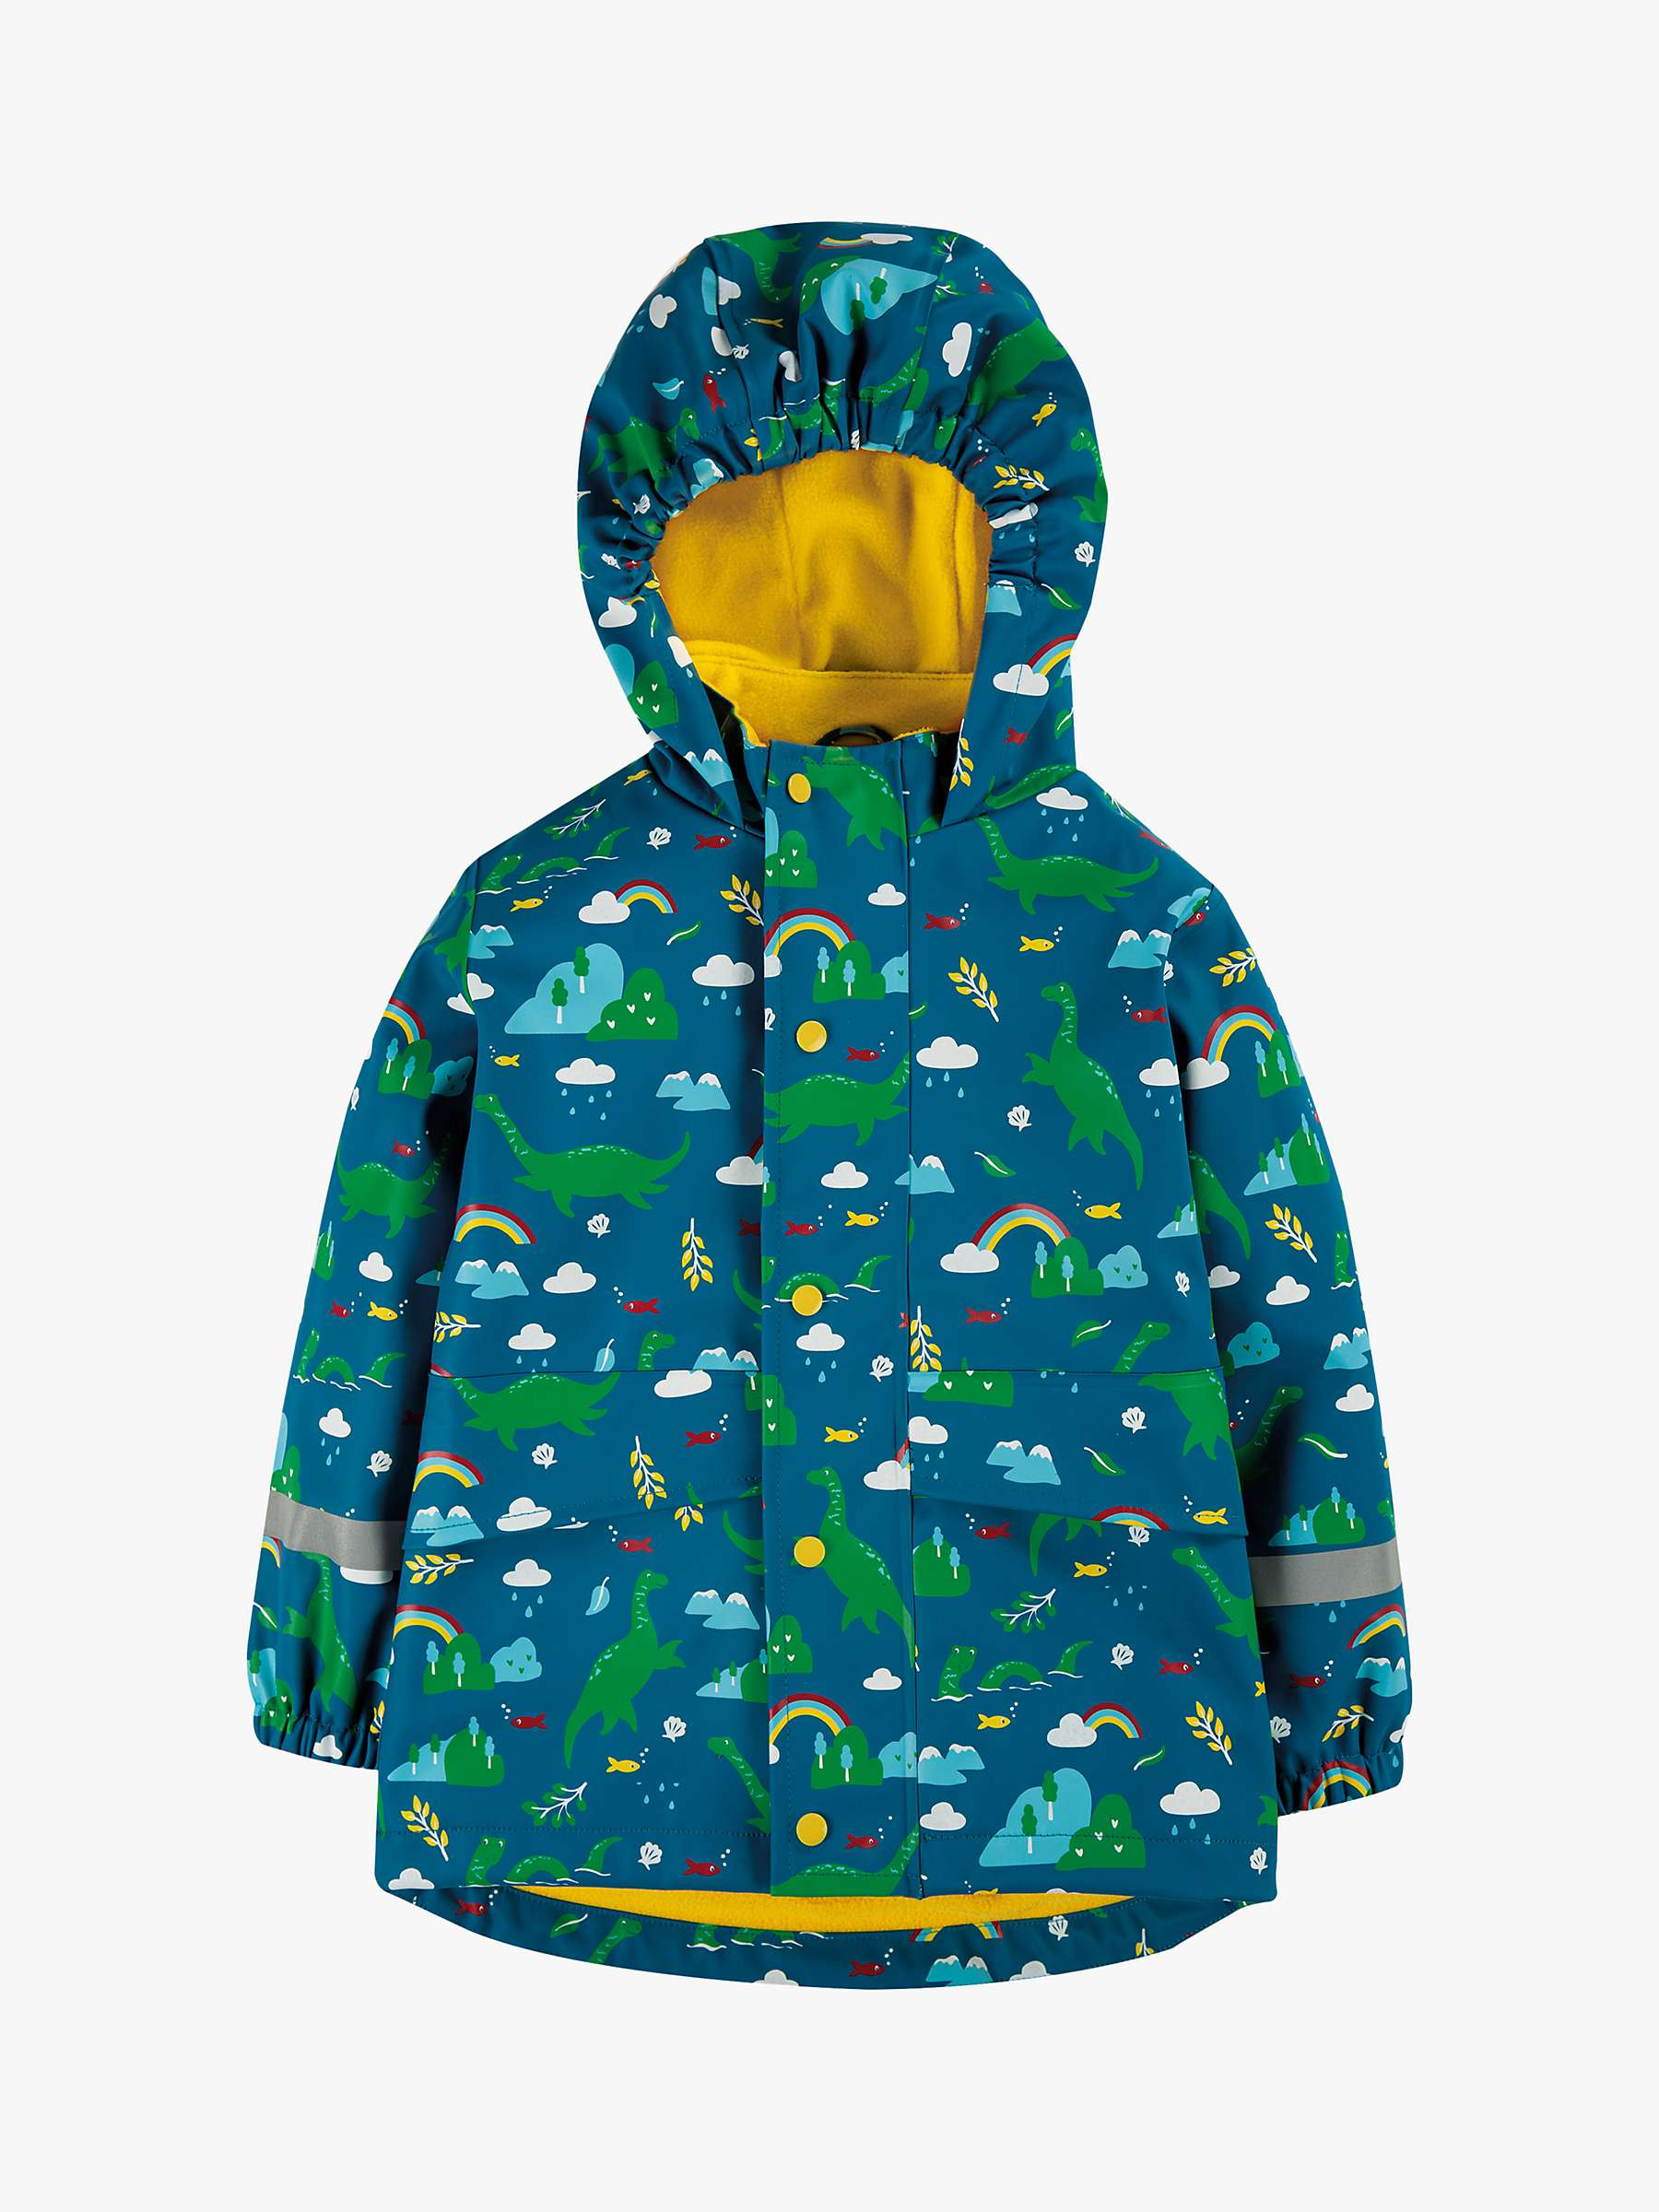 Gift Guide for Kids Unisex Raincoat